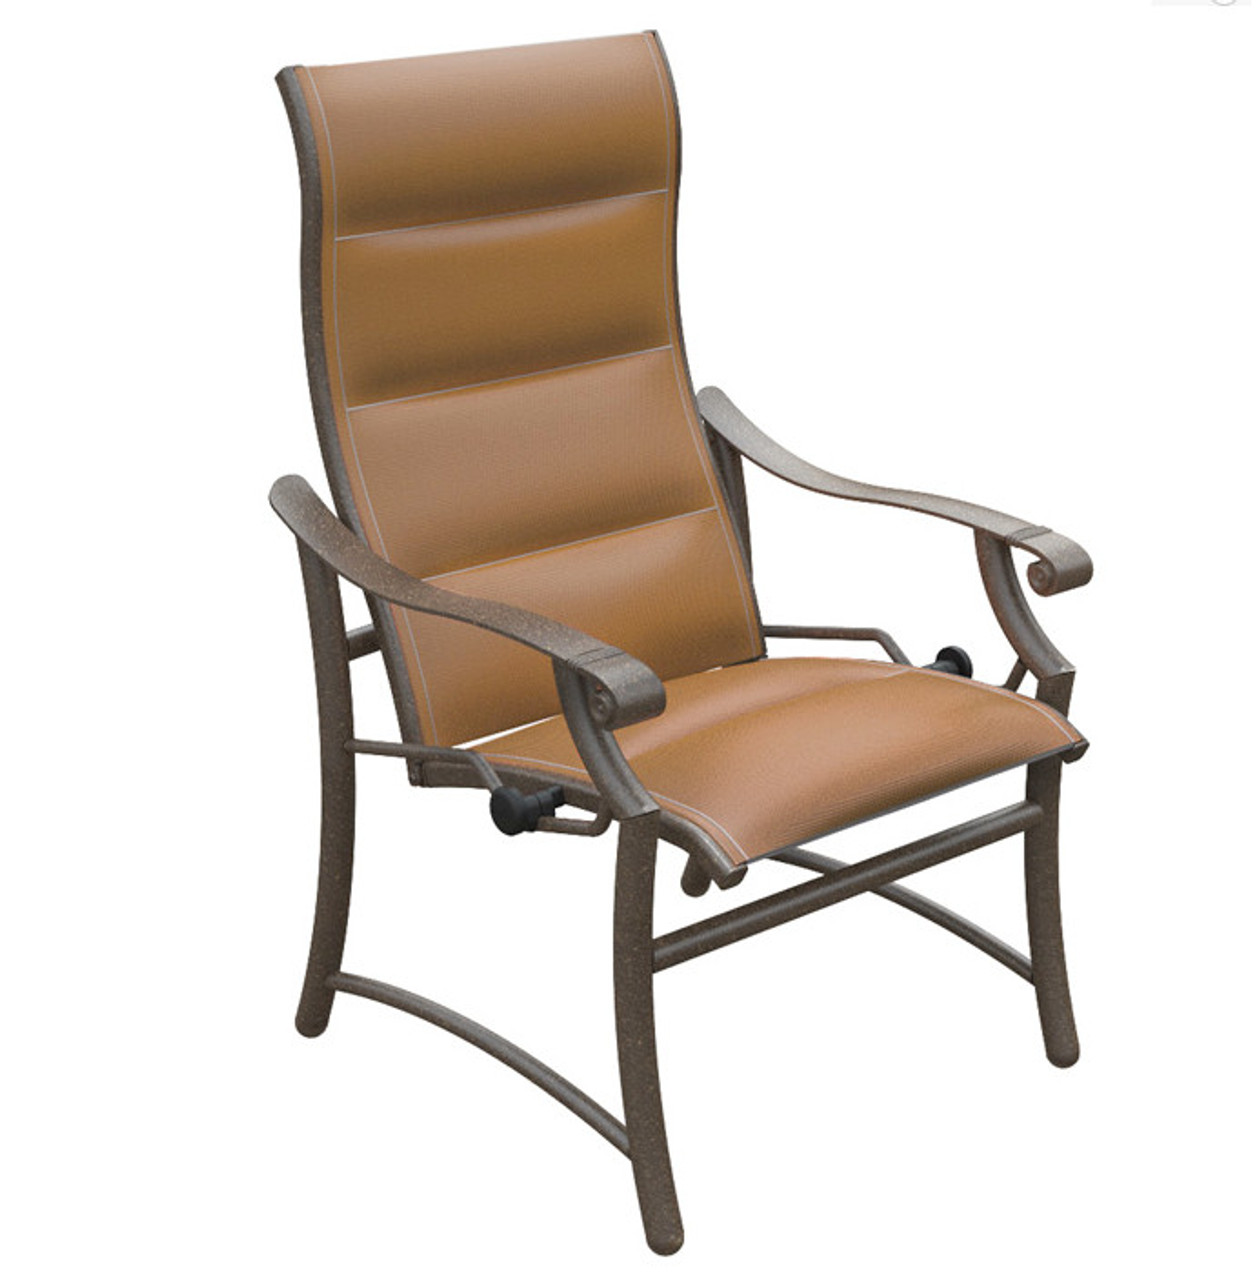 tropitone lounge chairs folding chair daraz montreux collection urcomfort padded sling uc mont ps lc 93888 1514062098 jpg c 2 imbypass on